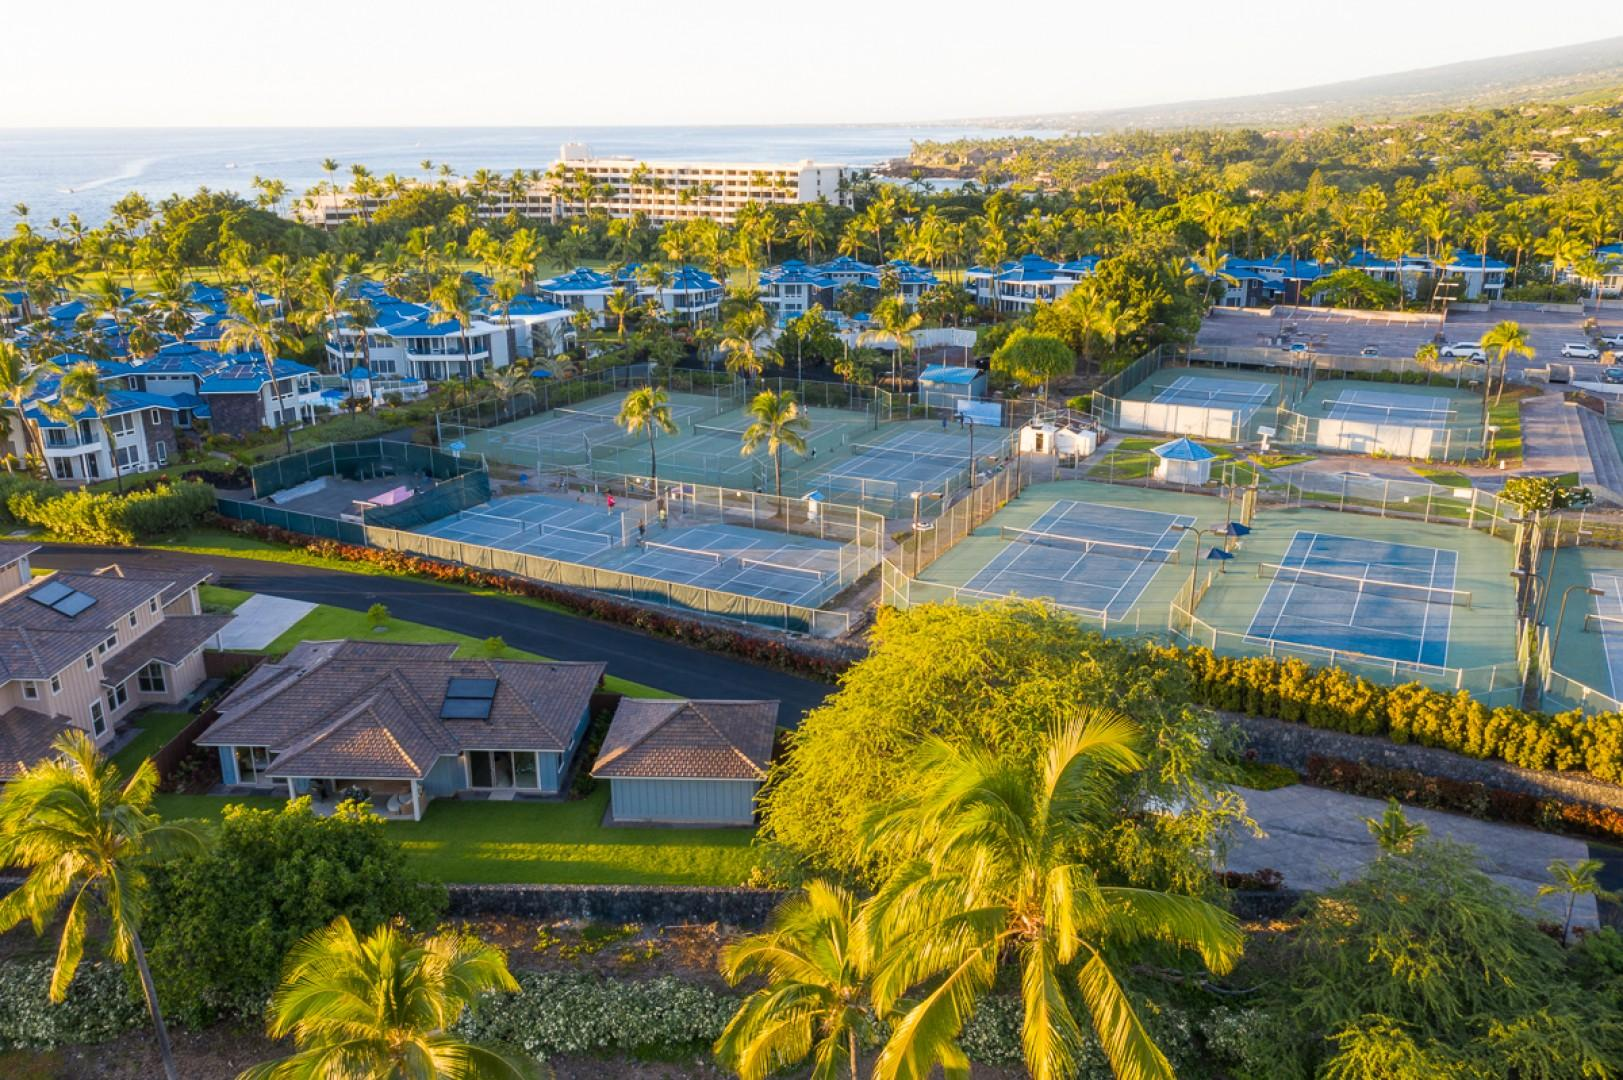 Holua Kai #1 very close to Holua Tennis and Pickel Ball Center extra fee to play but tons of fun